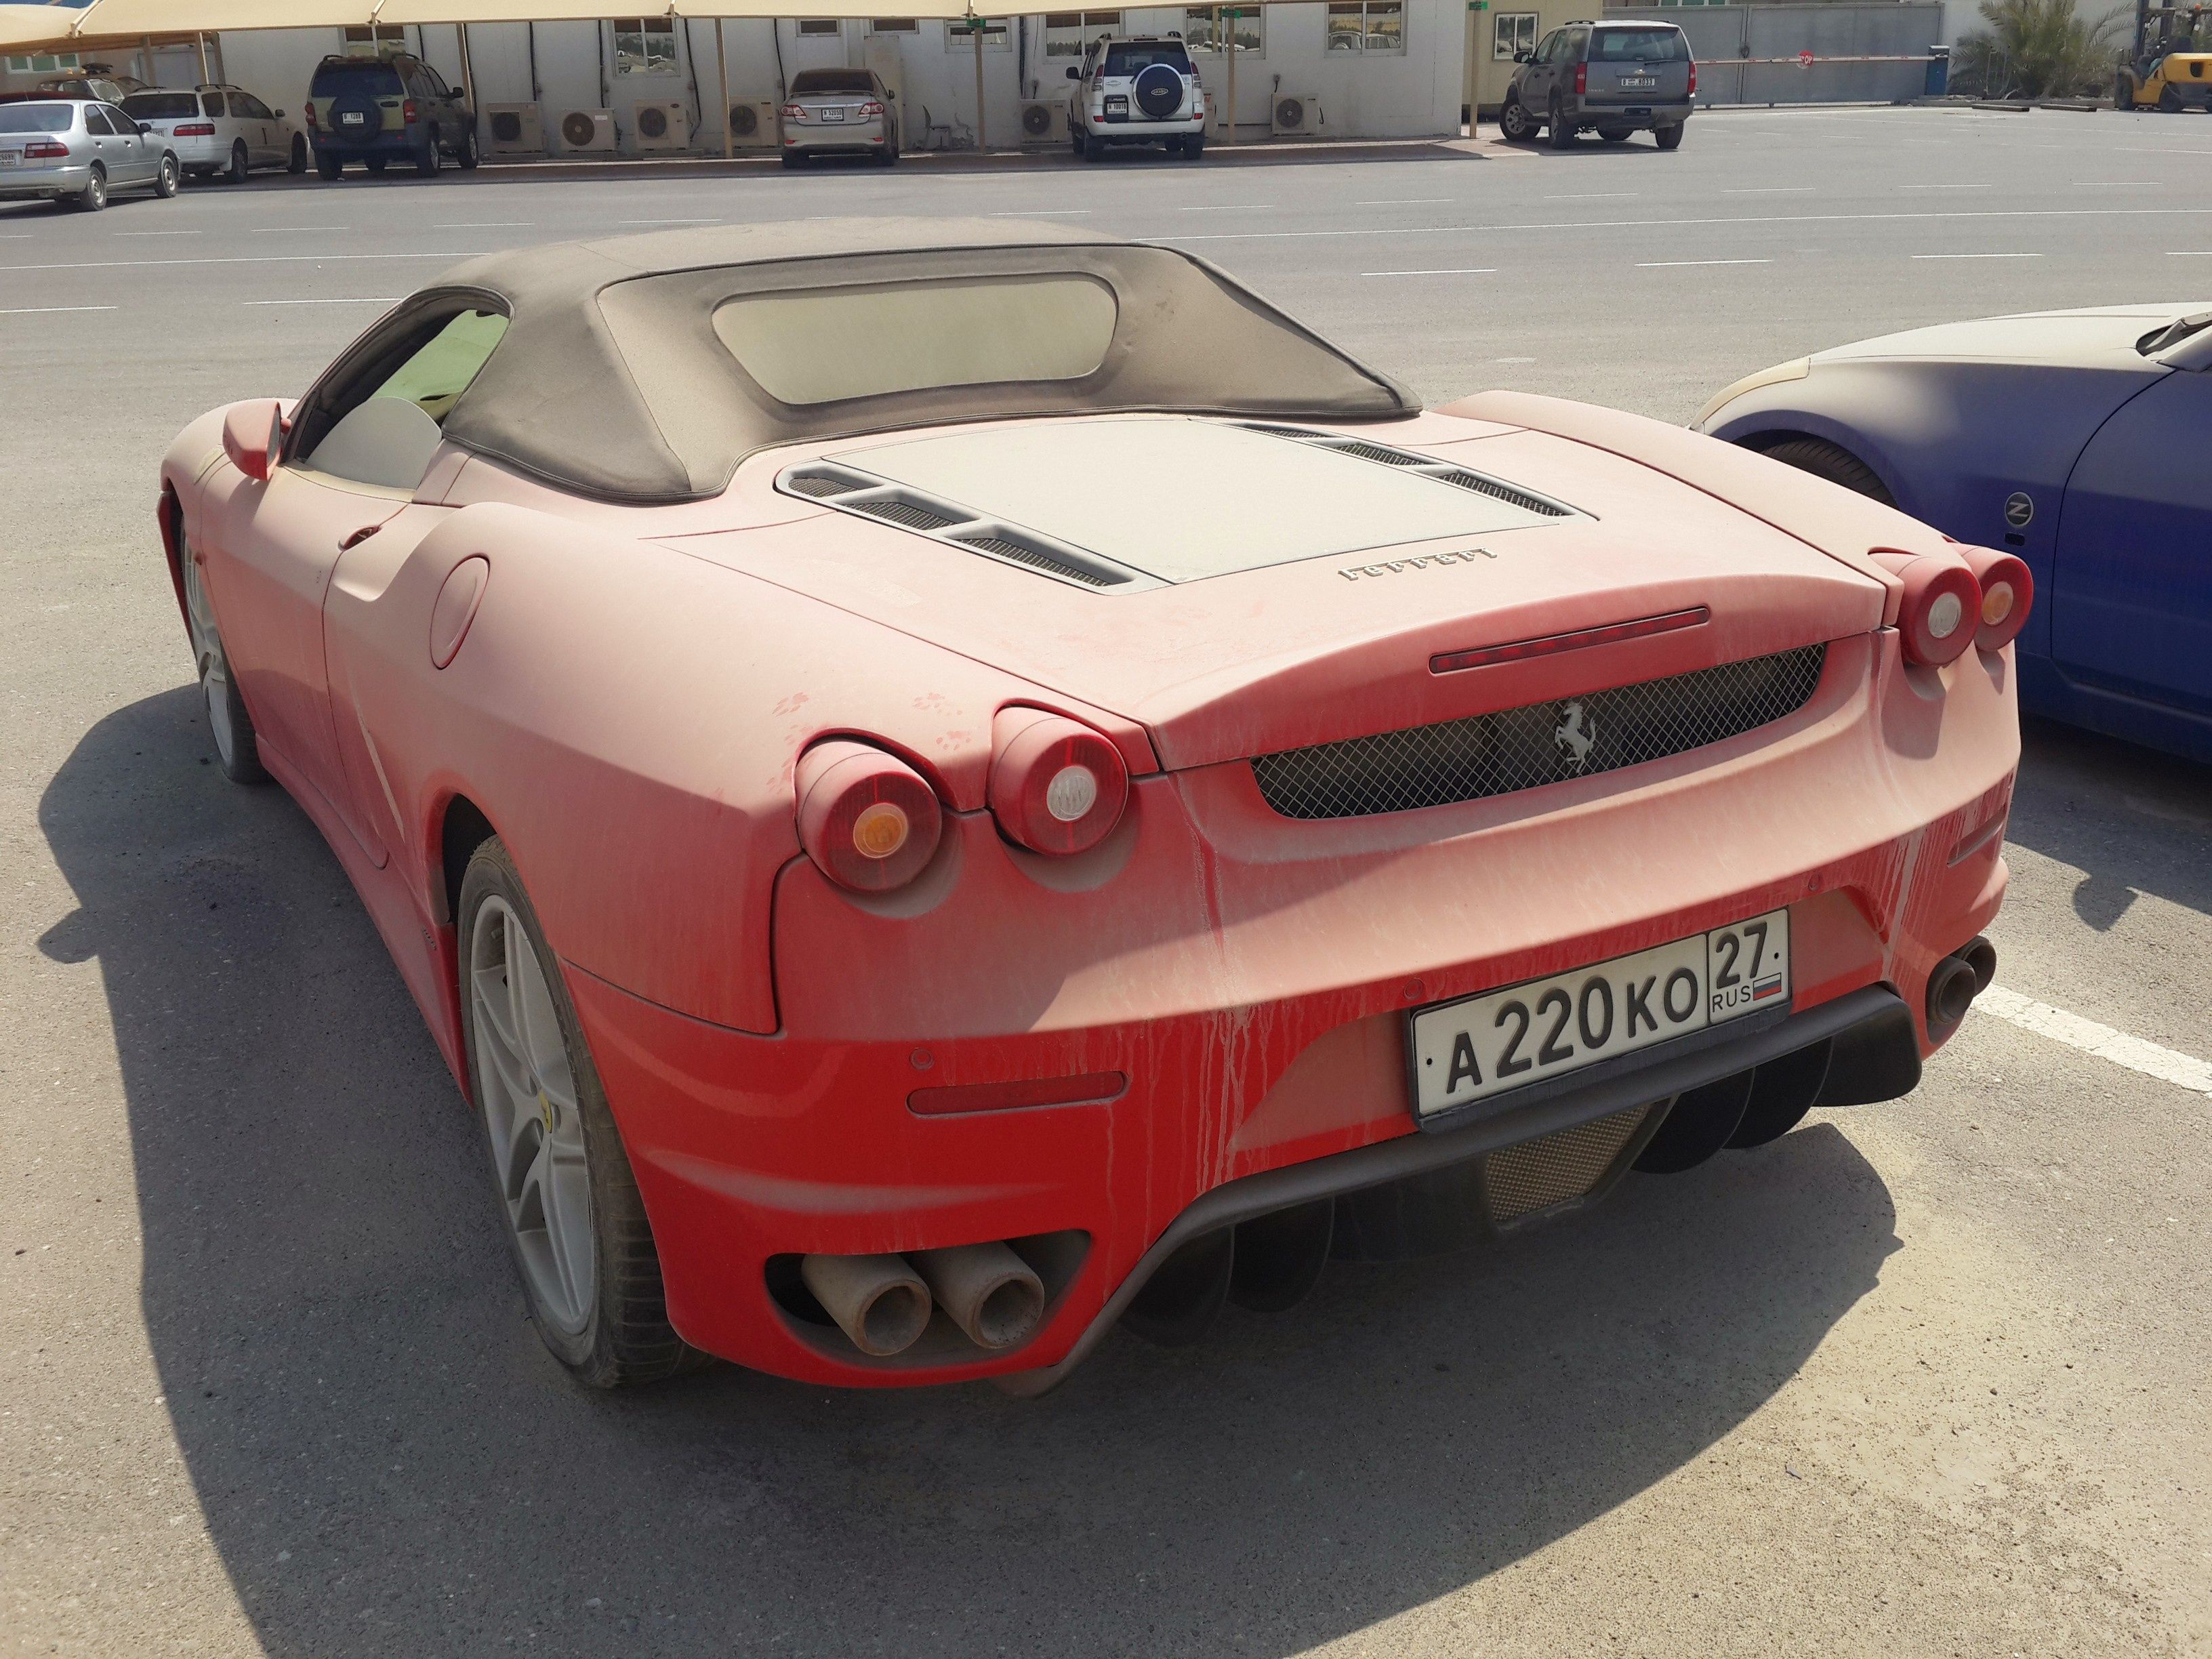 Https Www Quora Com What Happens To All The Abandoned Cars In Dubai Can I Import Those Into The Usa Abandoned Cars In Dubai Abandoned Cars Dubai